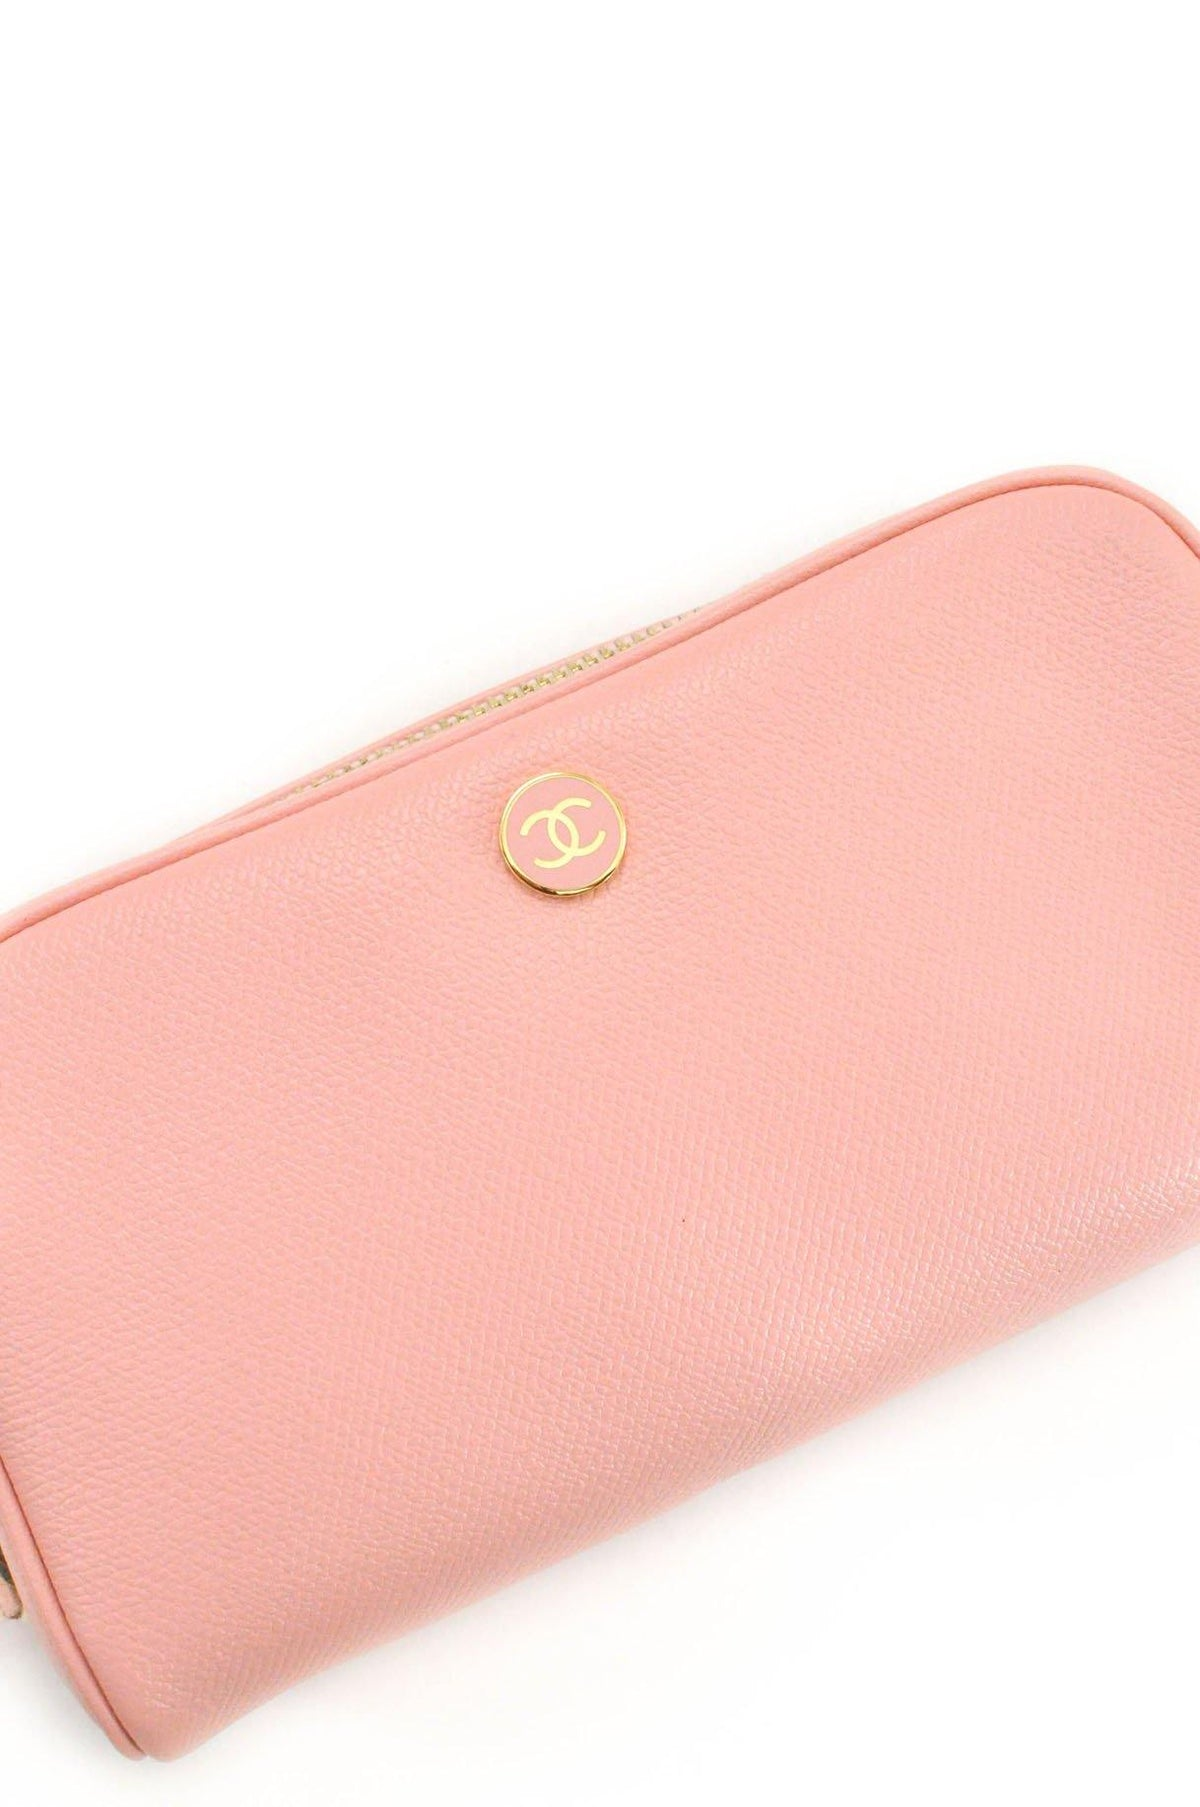 Vintage Chanel Pink Leather Zip Pouch from Sweet and Spark